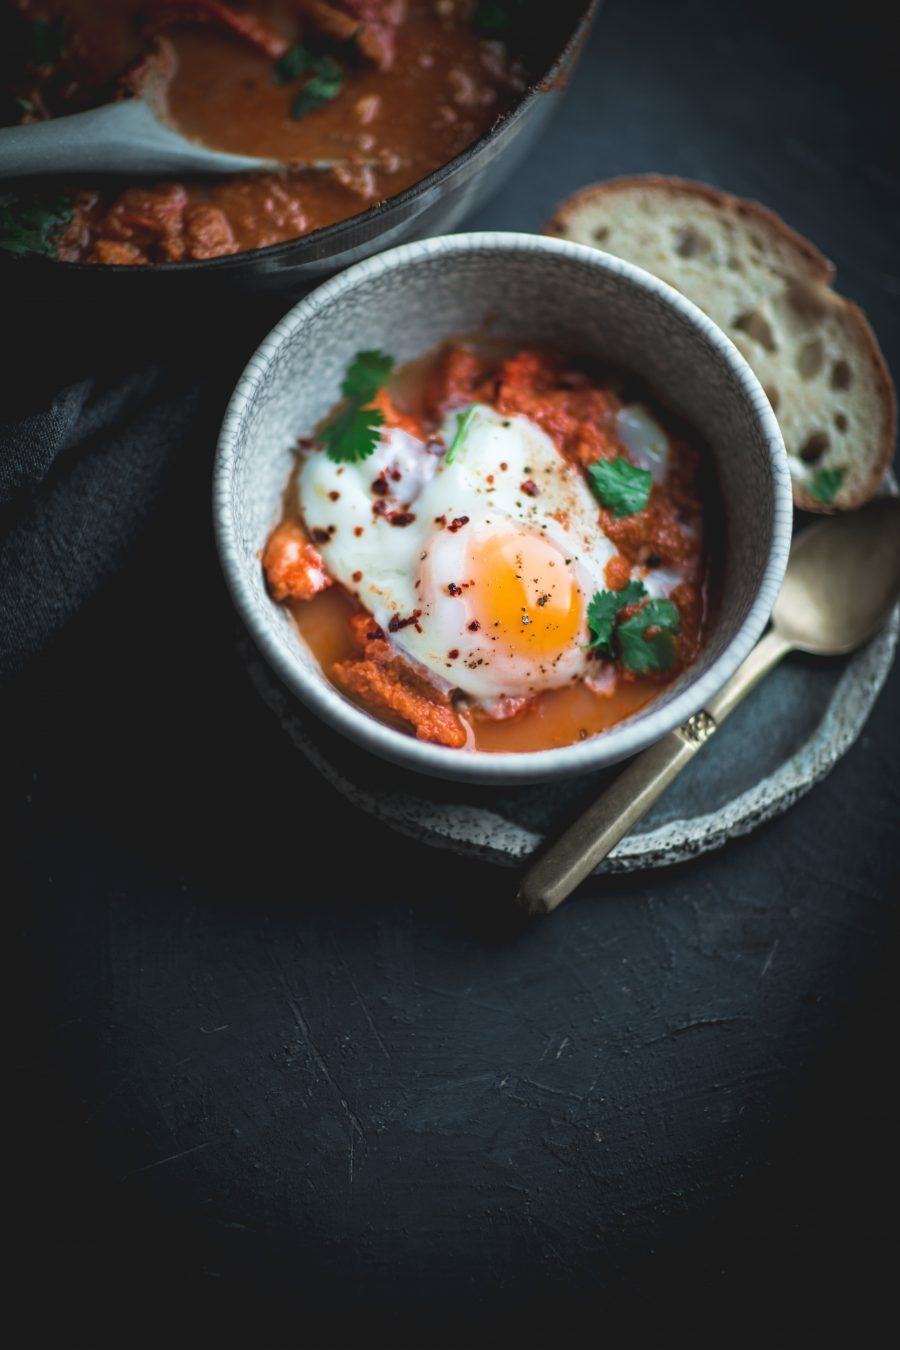 Shakshuka with Persimmons This delicious pepper stew hails from north Africa and the middle east, and is full of comforting spices and deep tannic flavors.